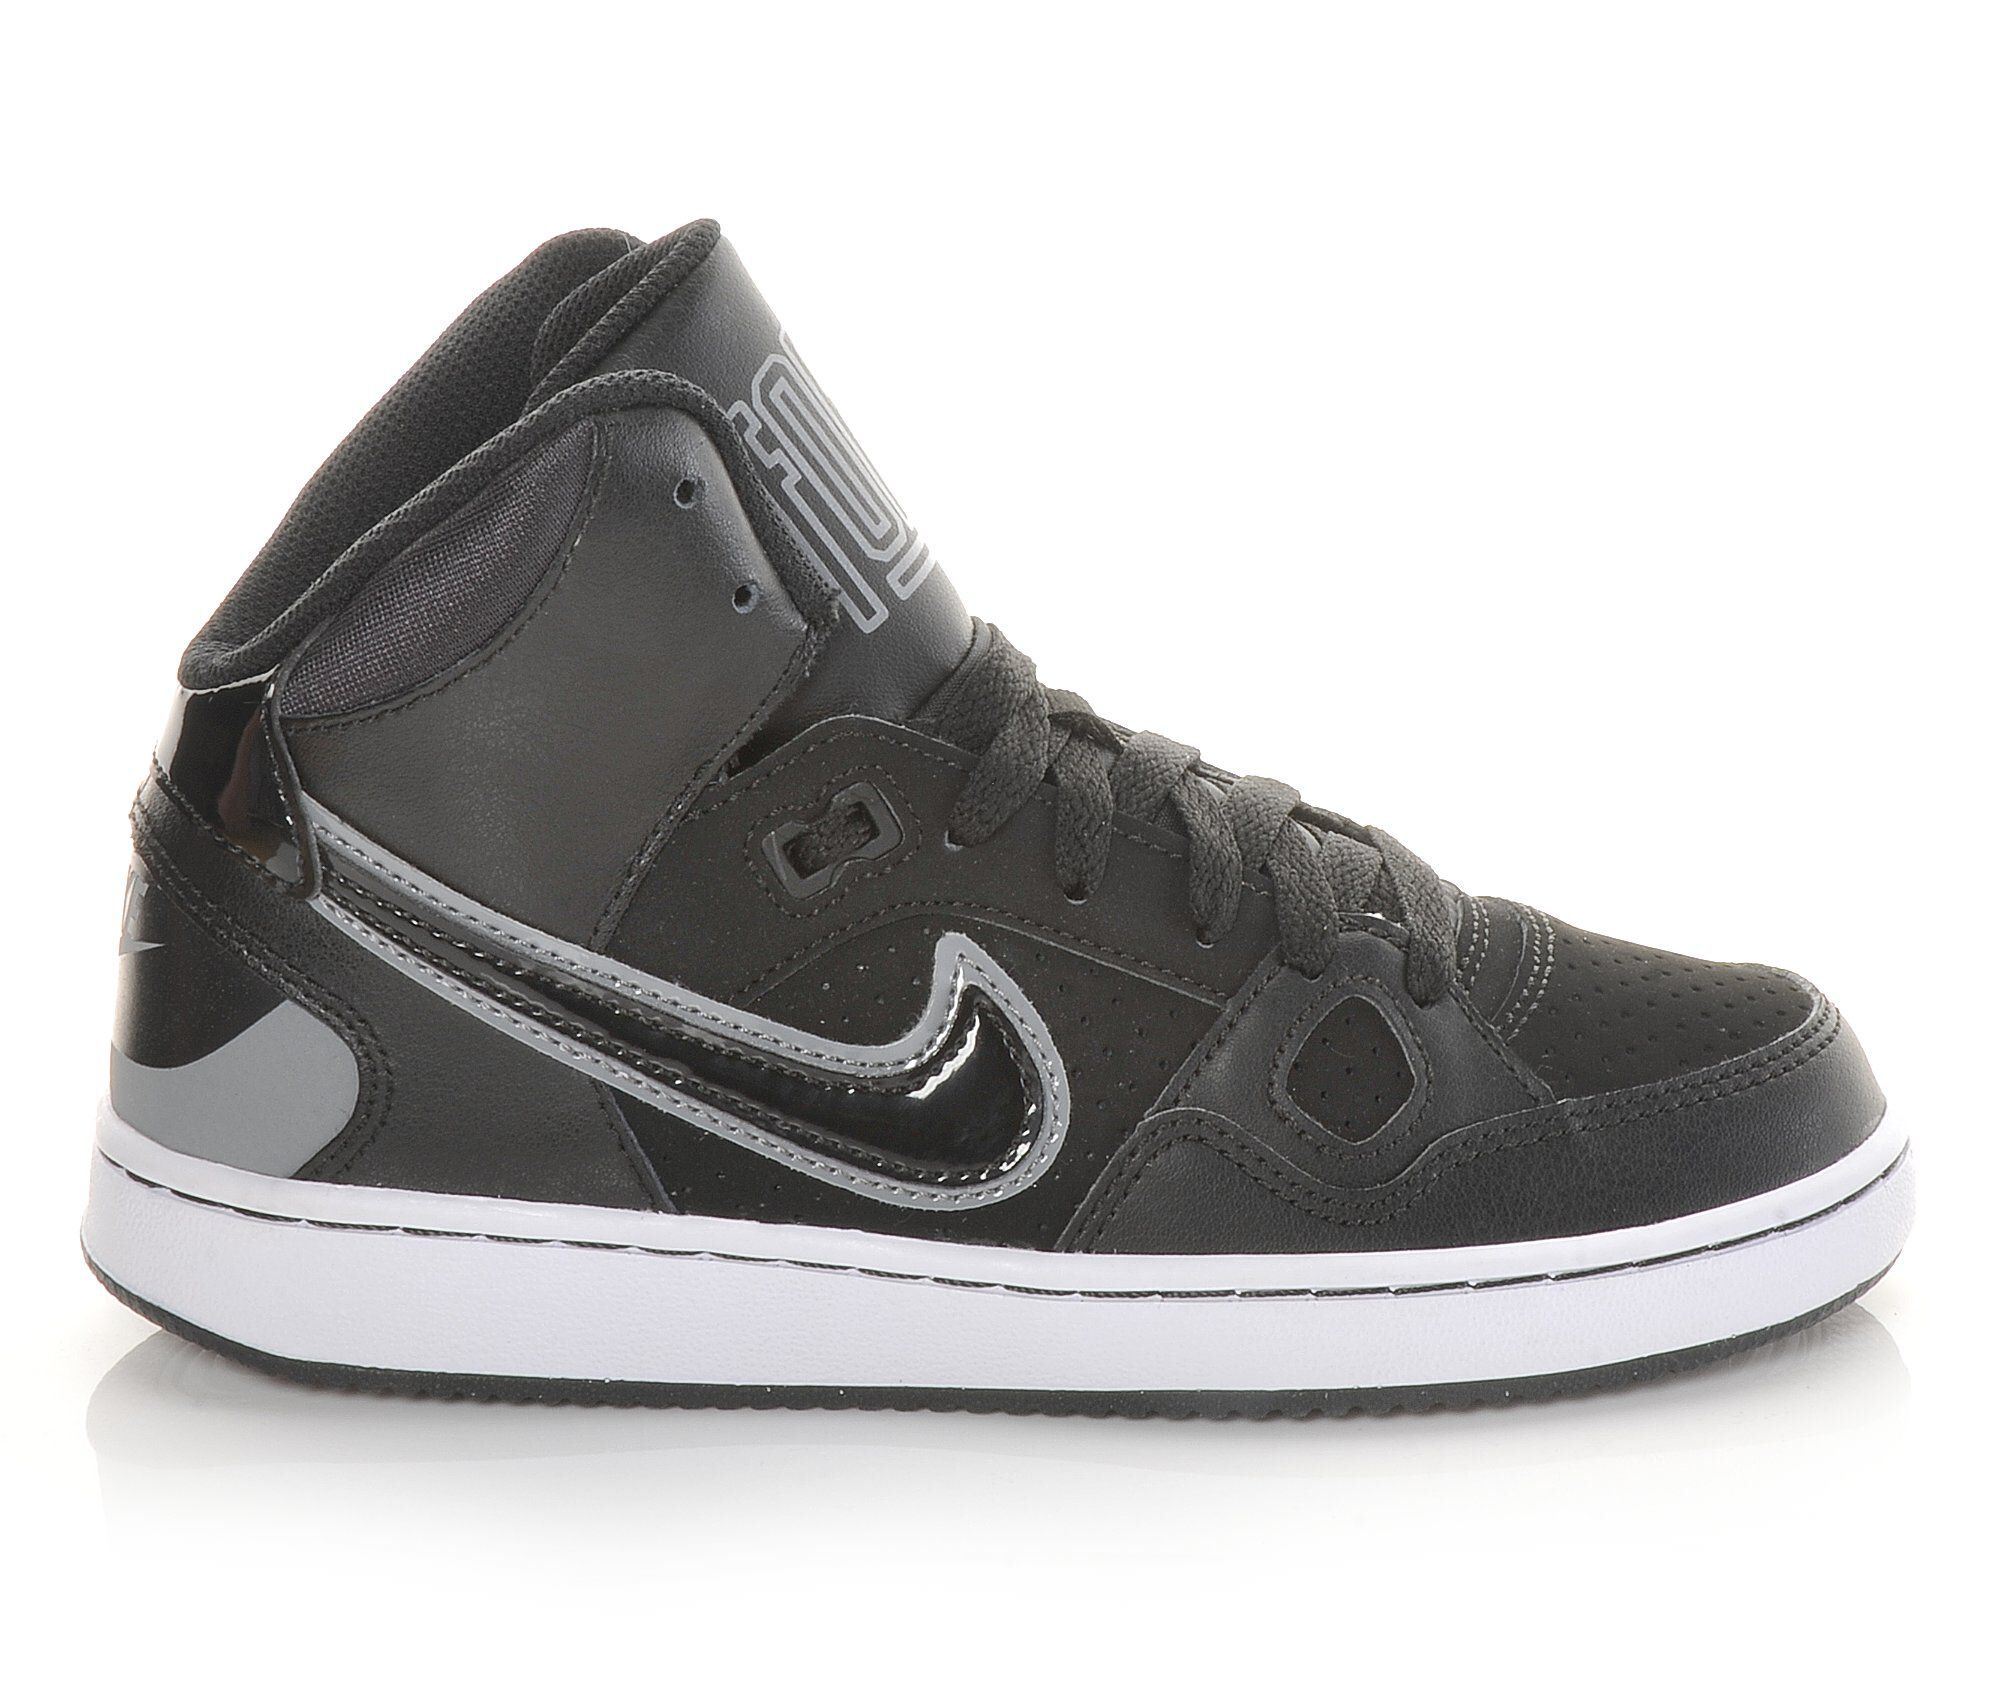 Images Boys Nike Son Of Force Mid GS Sneakers